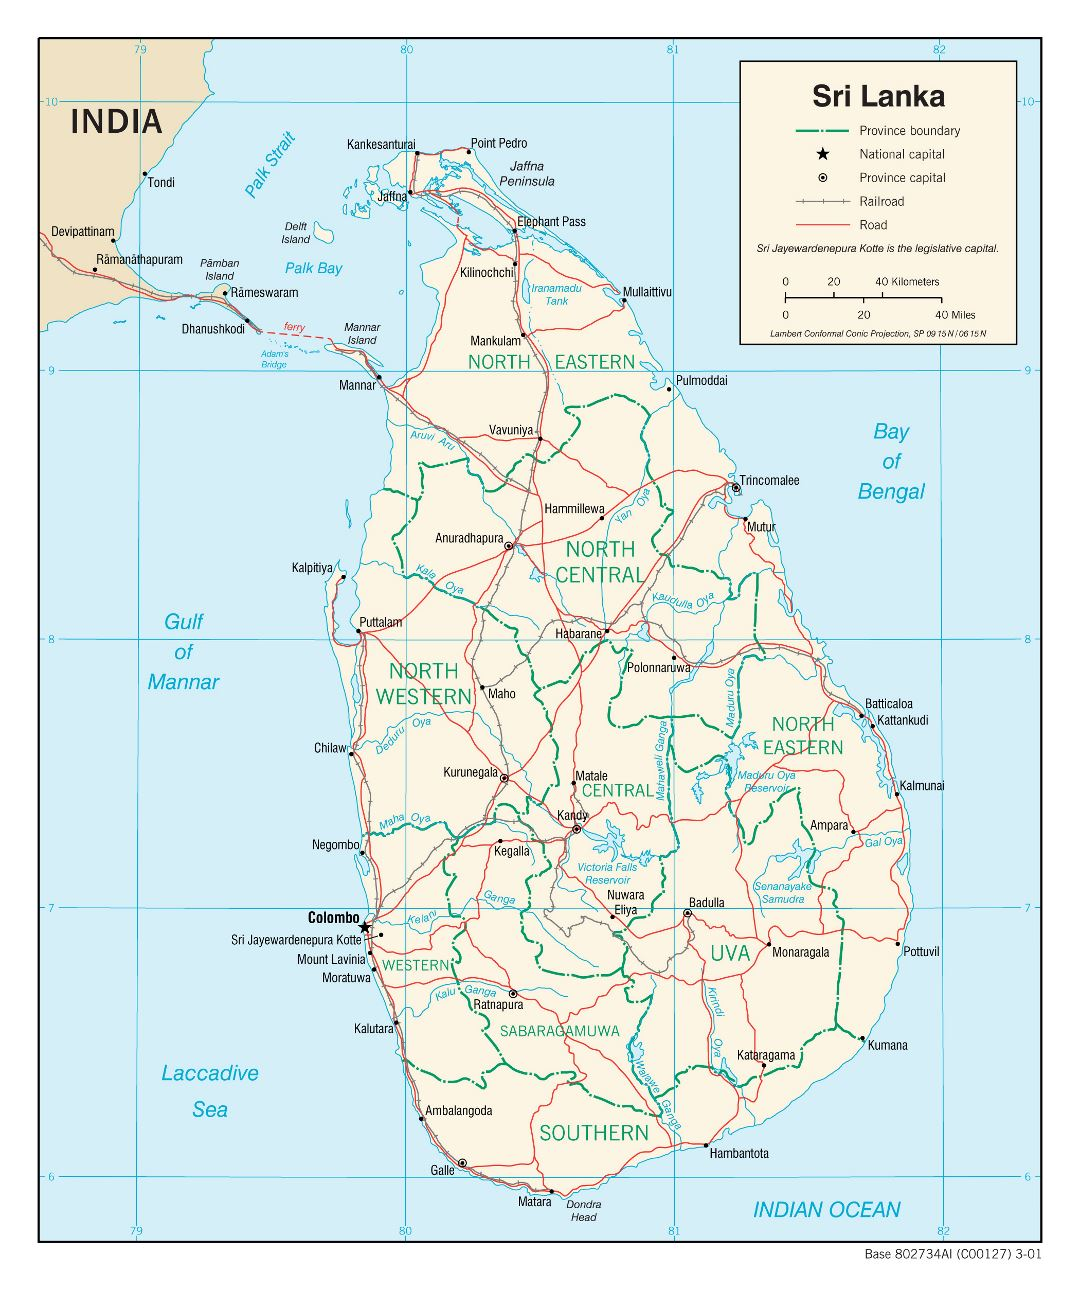 Large political and administrative map of Sri Lanka with roads, railroads and major cities - 2001